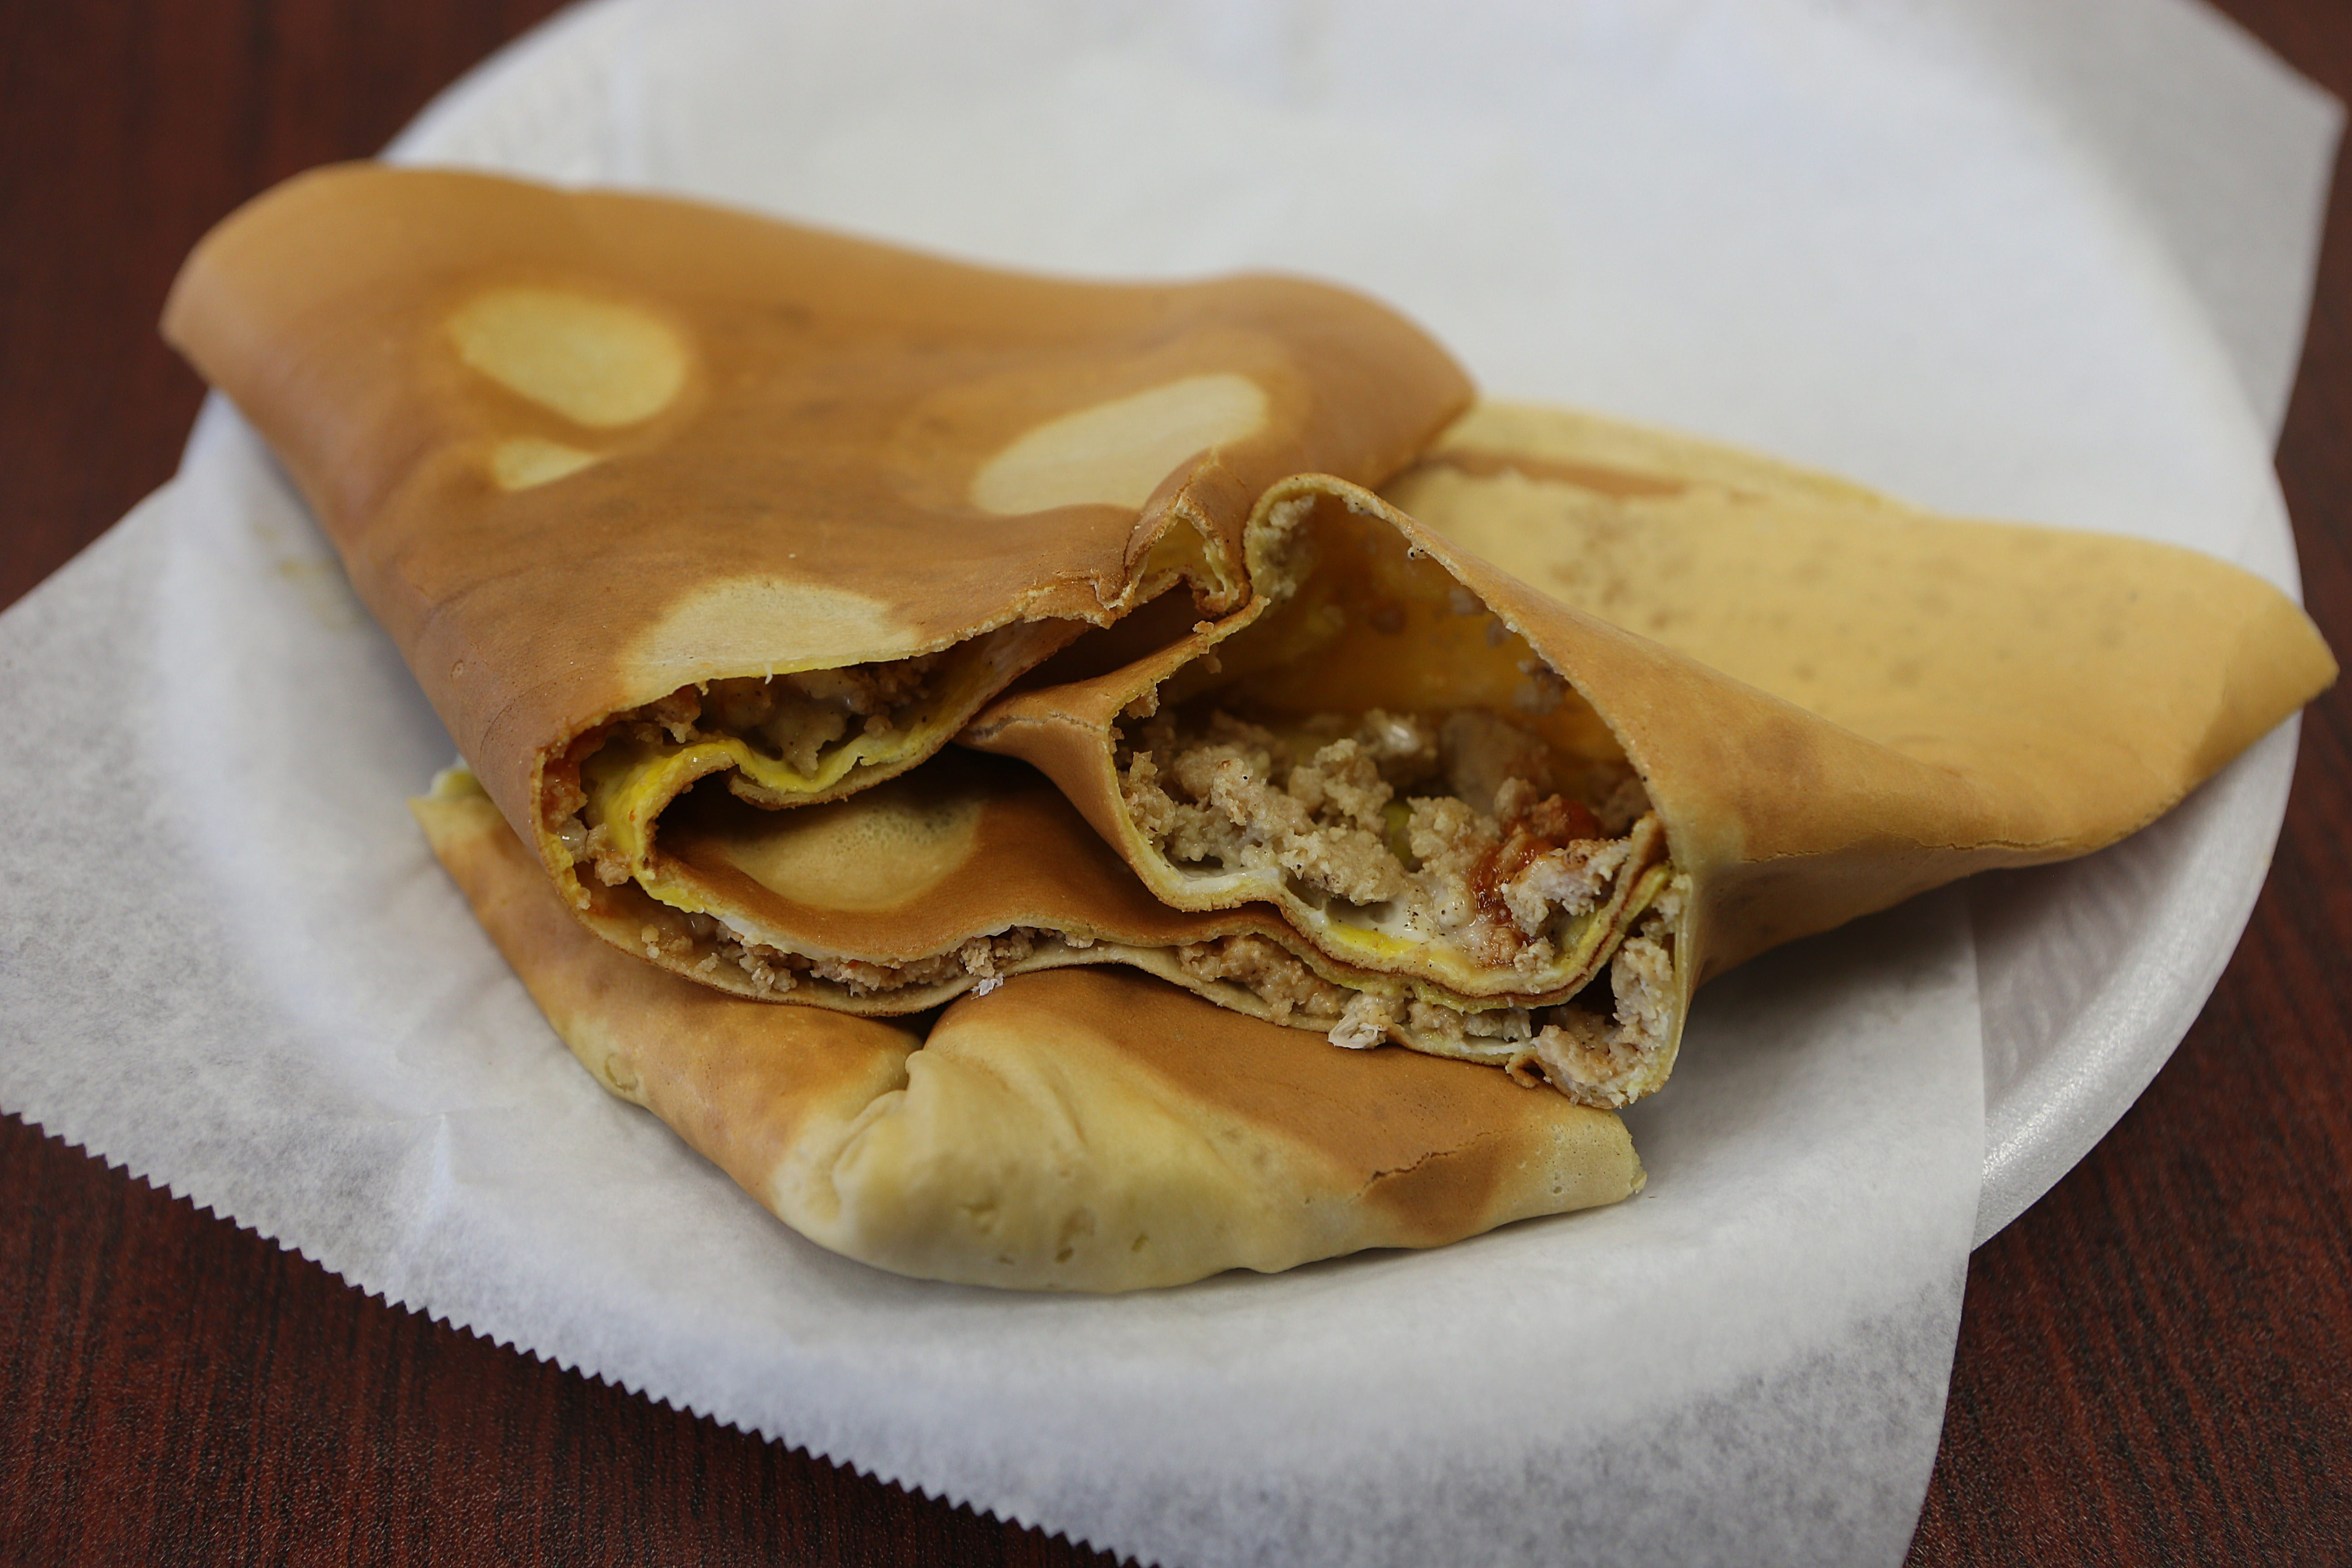 The crepe, filled with Indian-spiced ground chicken, is one of the international offerings at Mohammed Yaseen's Exotic Japanese Crepes.